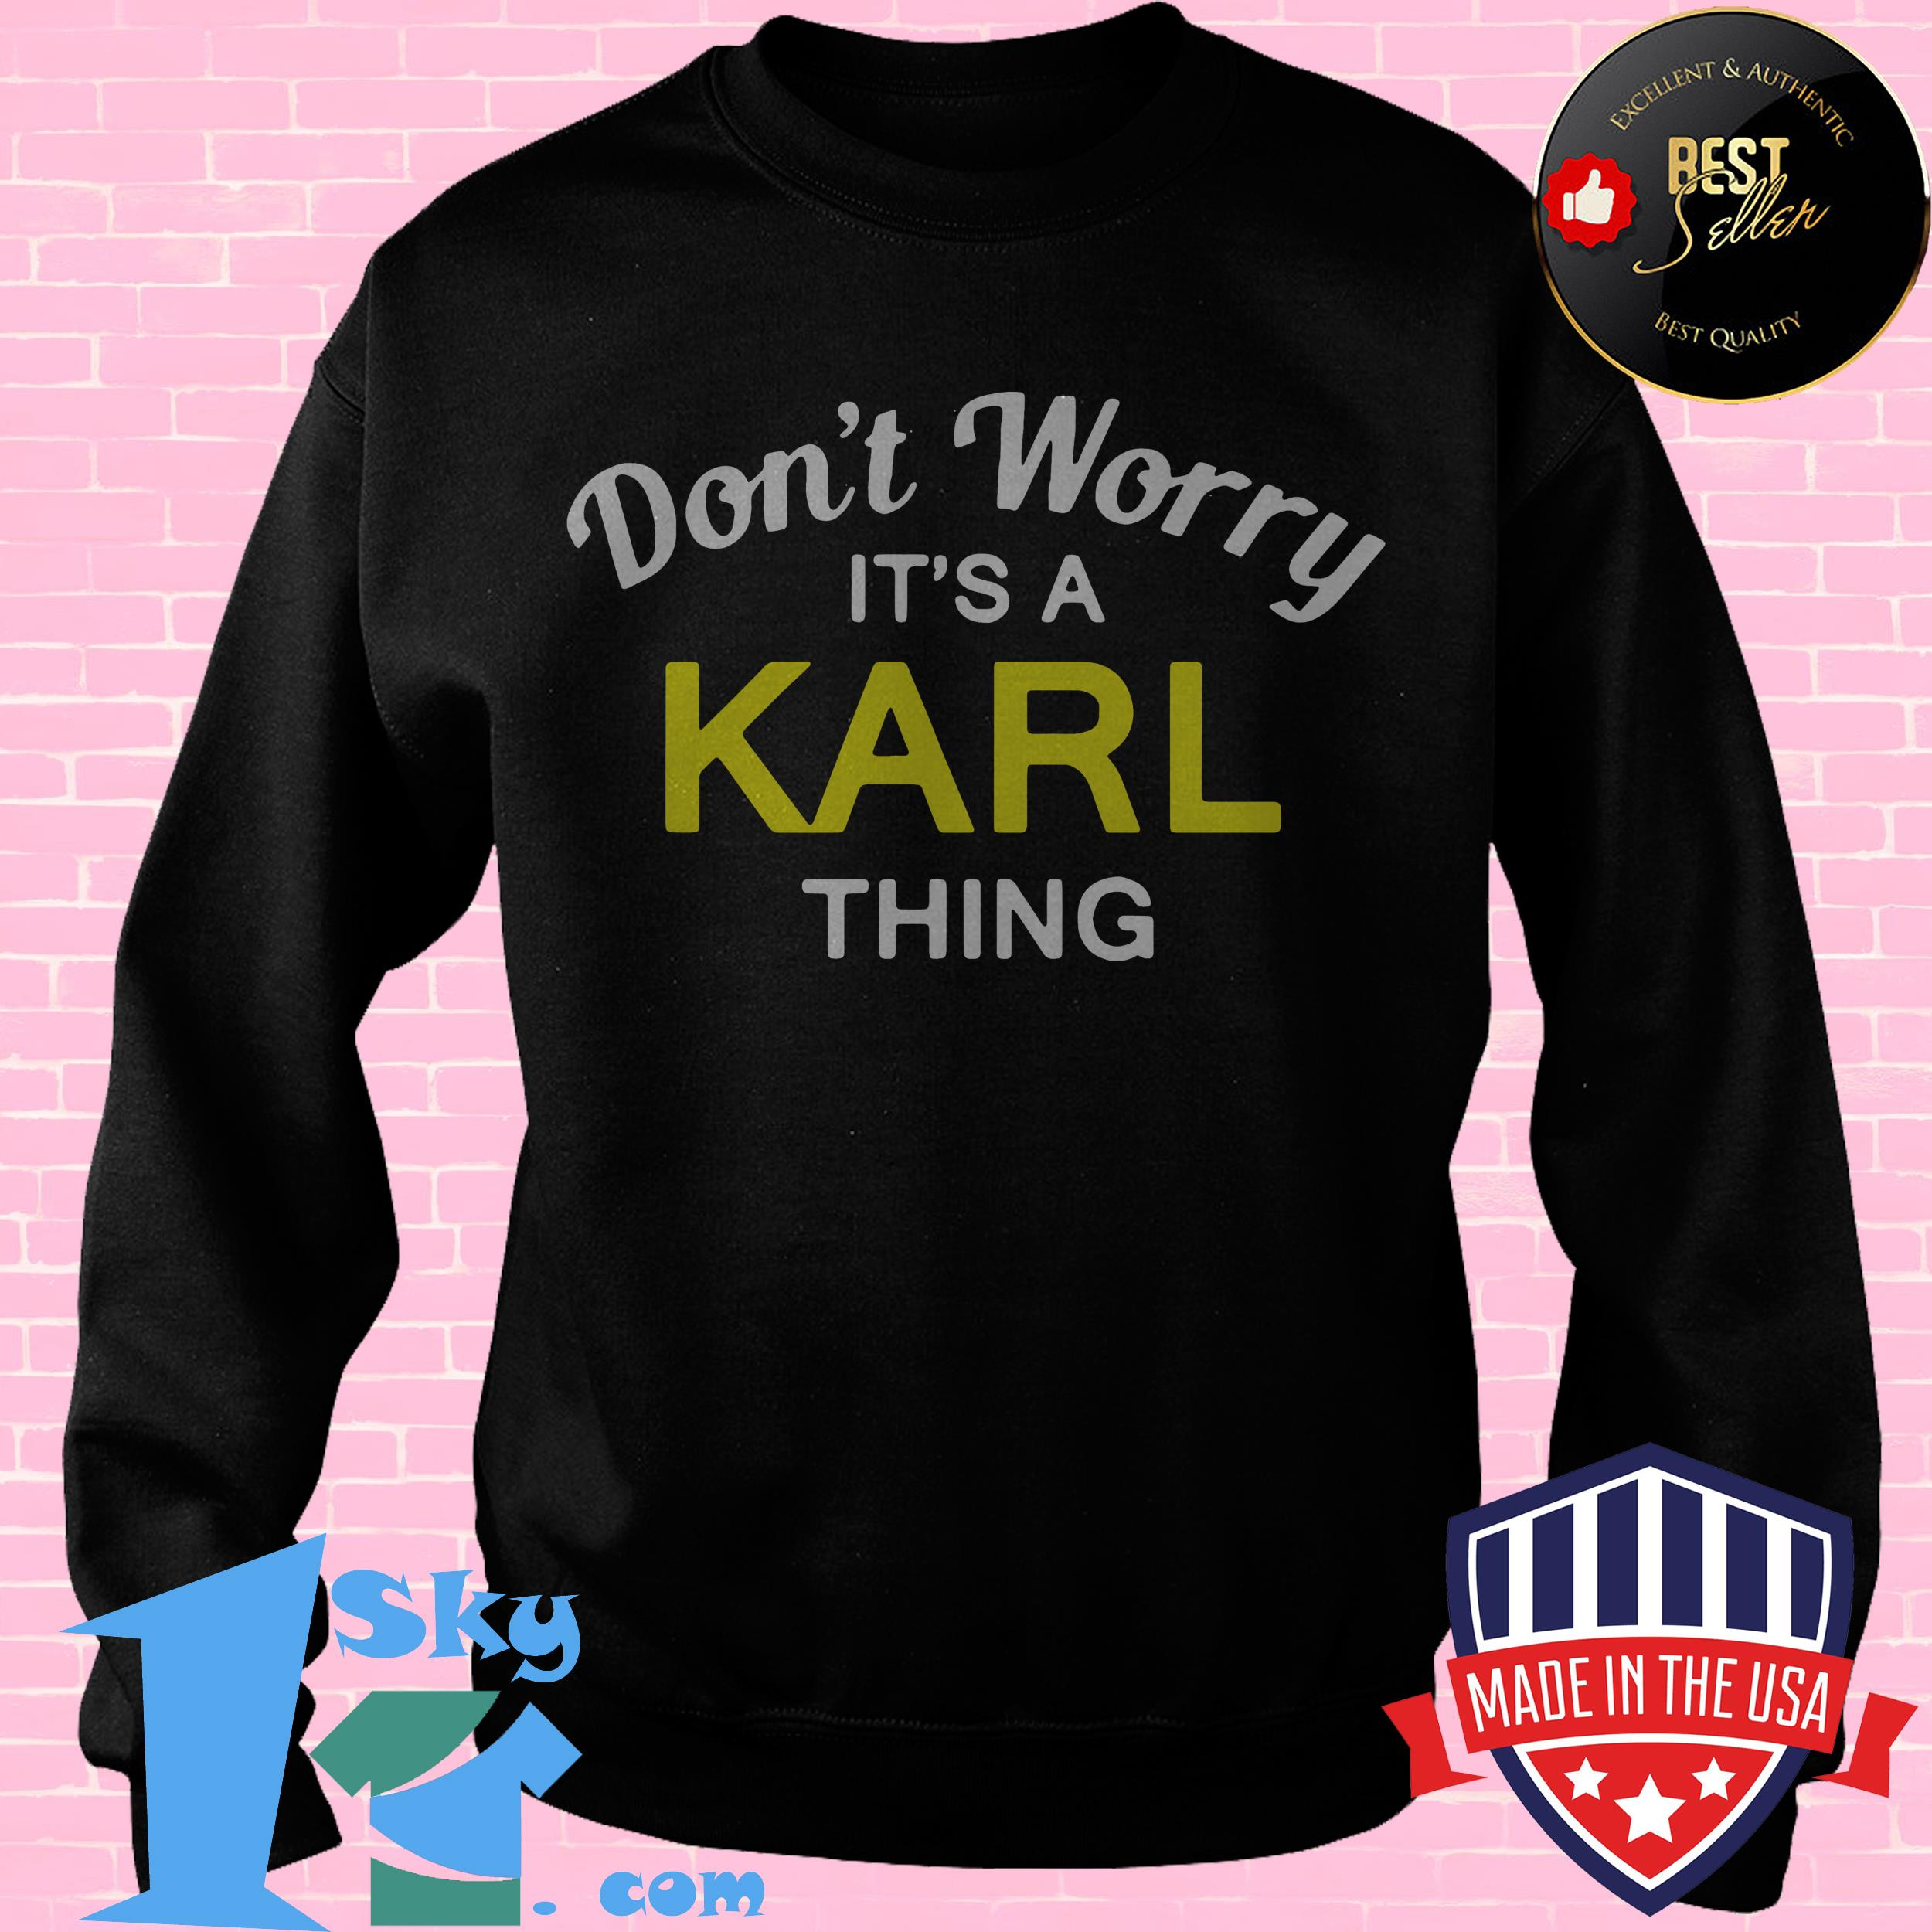 dont worry its a karl thing sweatshirt - Don't Worry It's a Karl Thing shirt